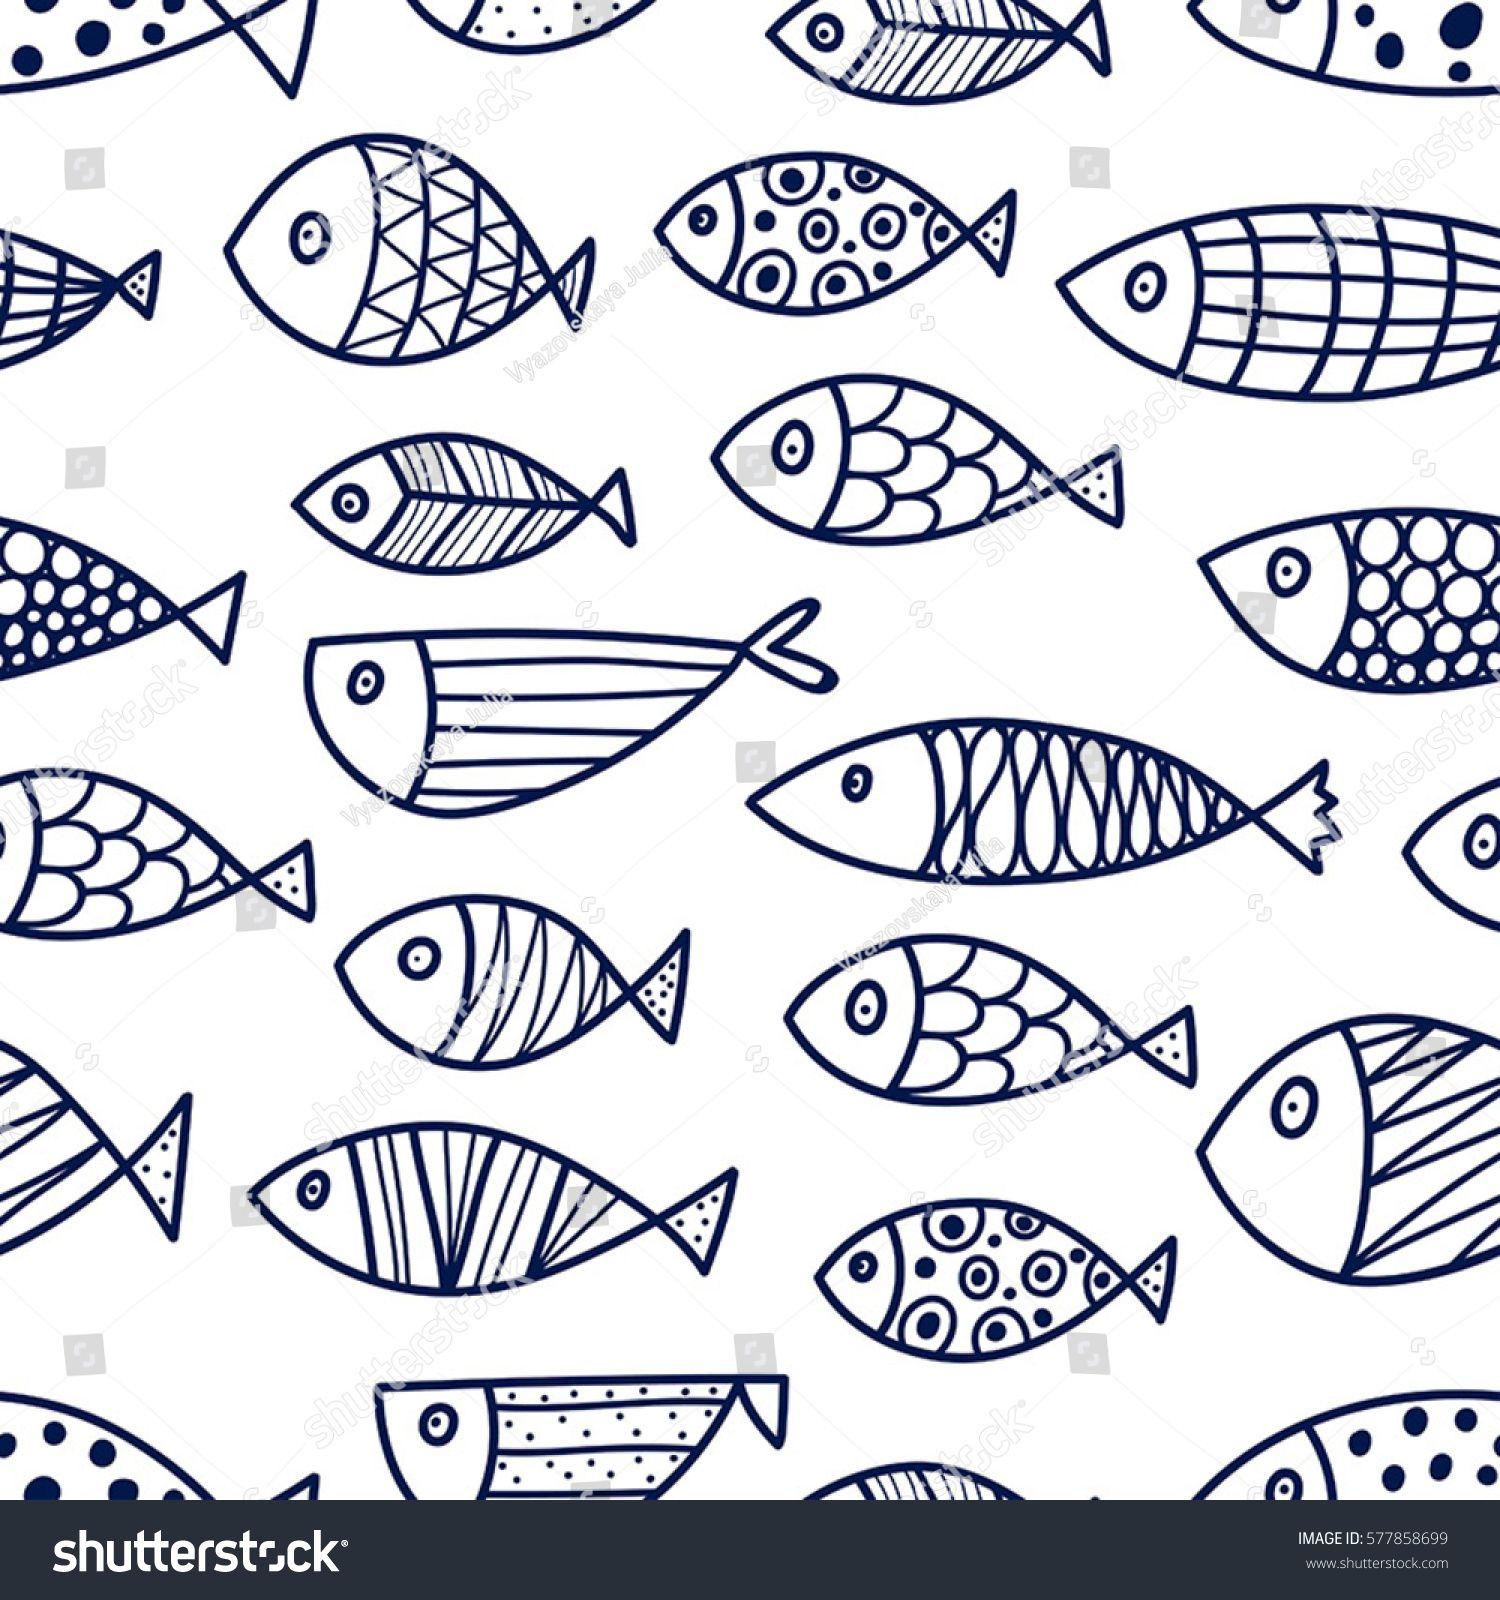 Blue Fish Vector Seamless Pattern Stock Vector (Royalty Free) 577858699